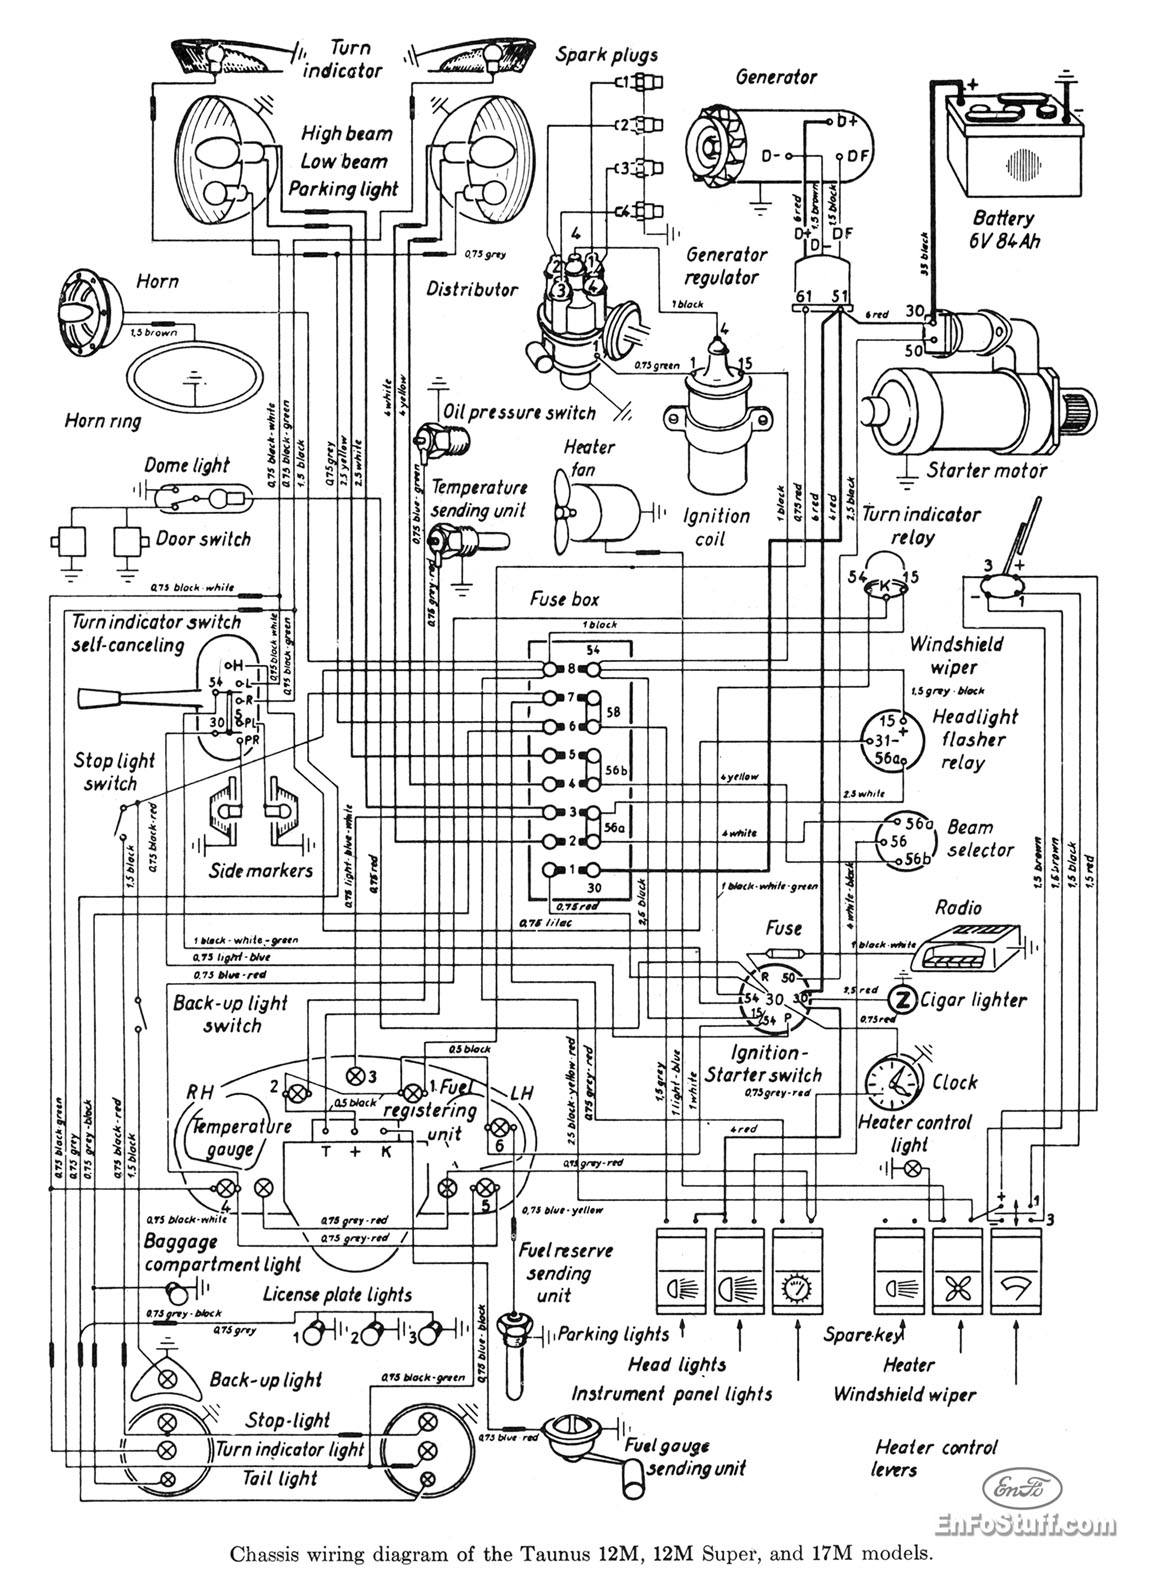 Saturn Wire Harness Diagram Wiring Library 2005 Simple Brake Devanshu U0026 39 S Blog 1966 Chevrolet Impala 2004